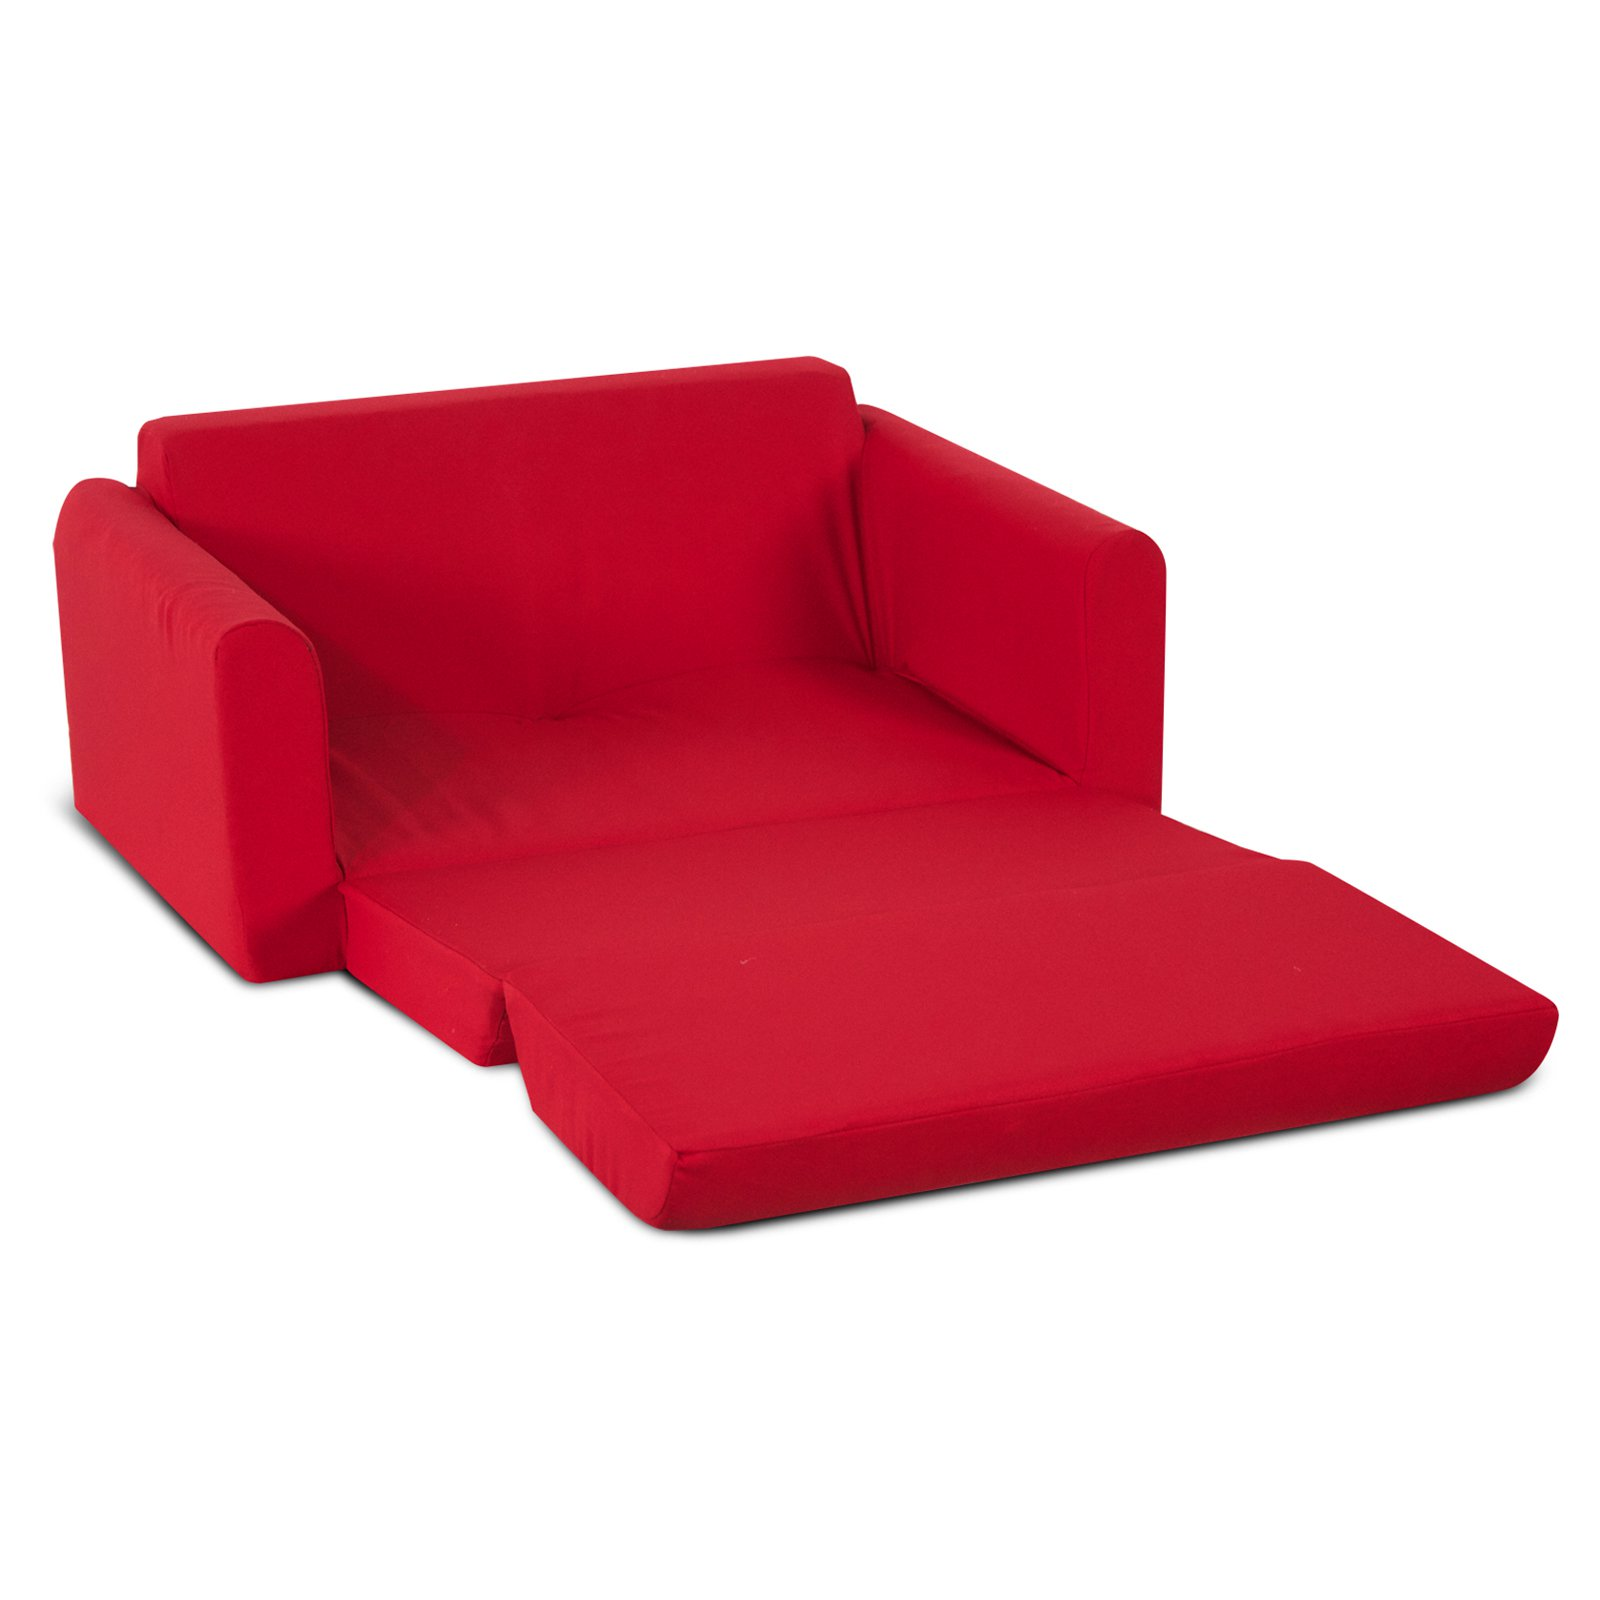 Kids Sofa Sleeper, Red - Walmart.com